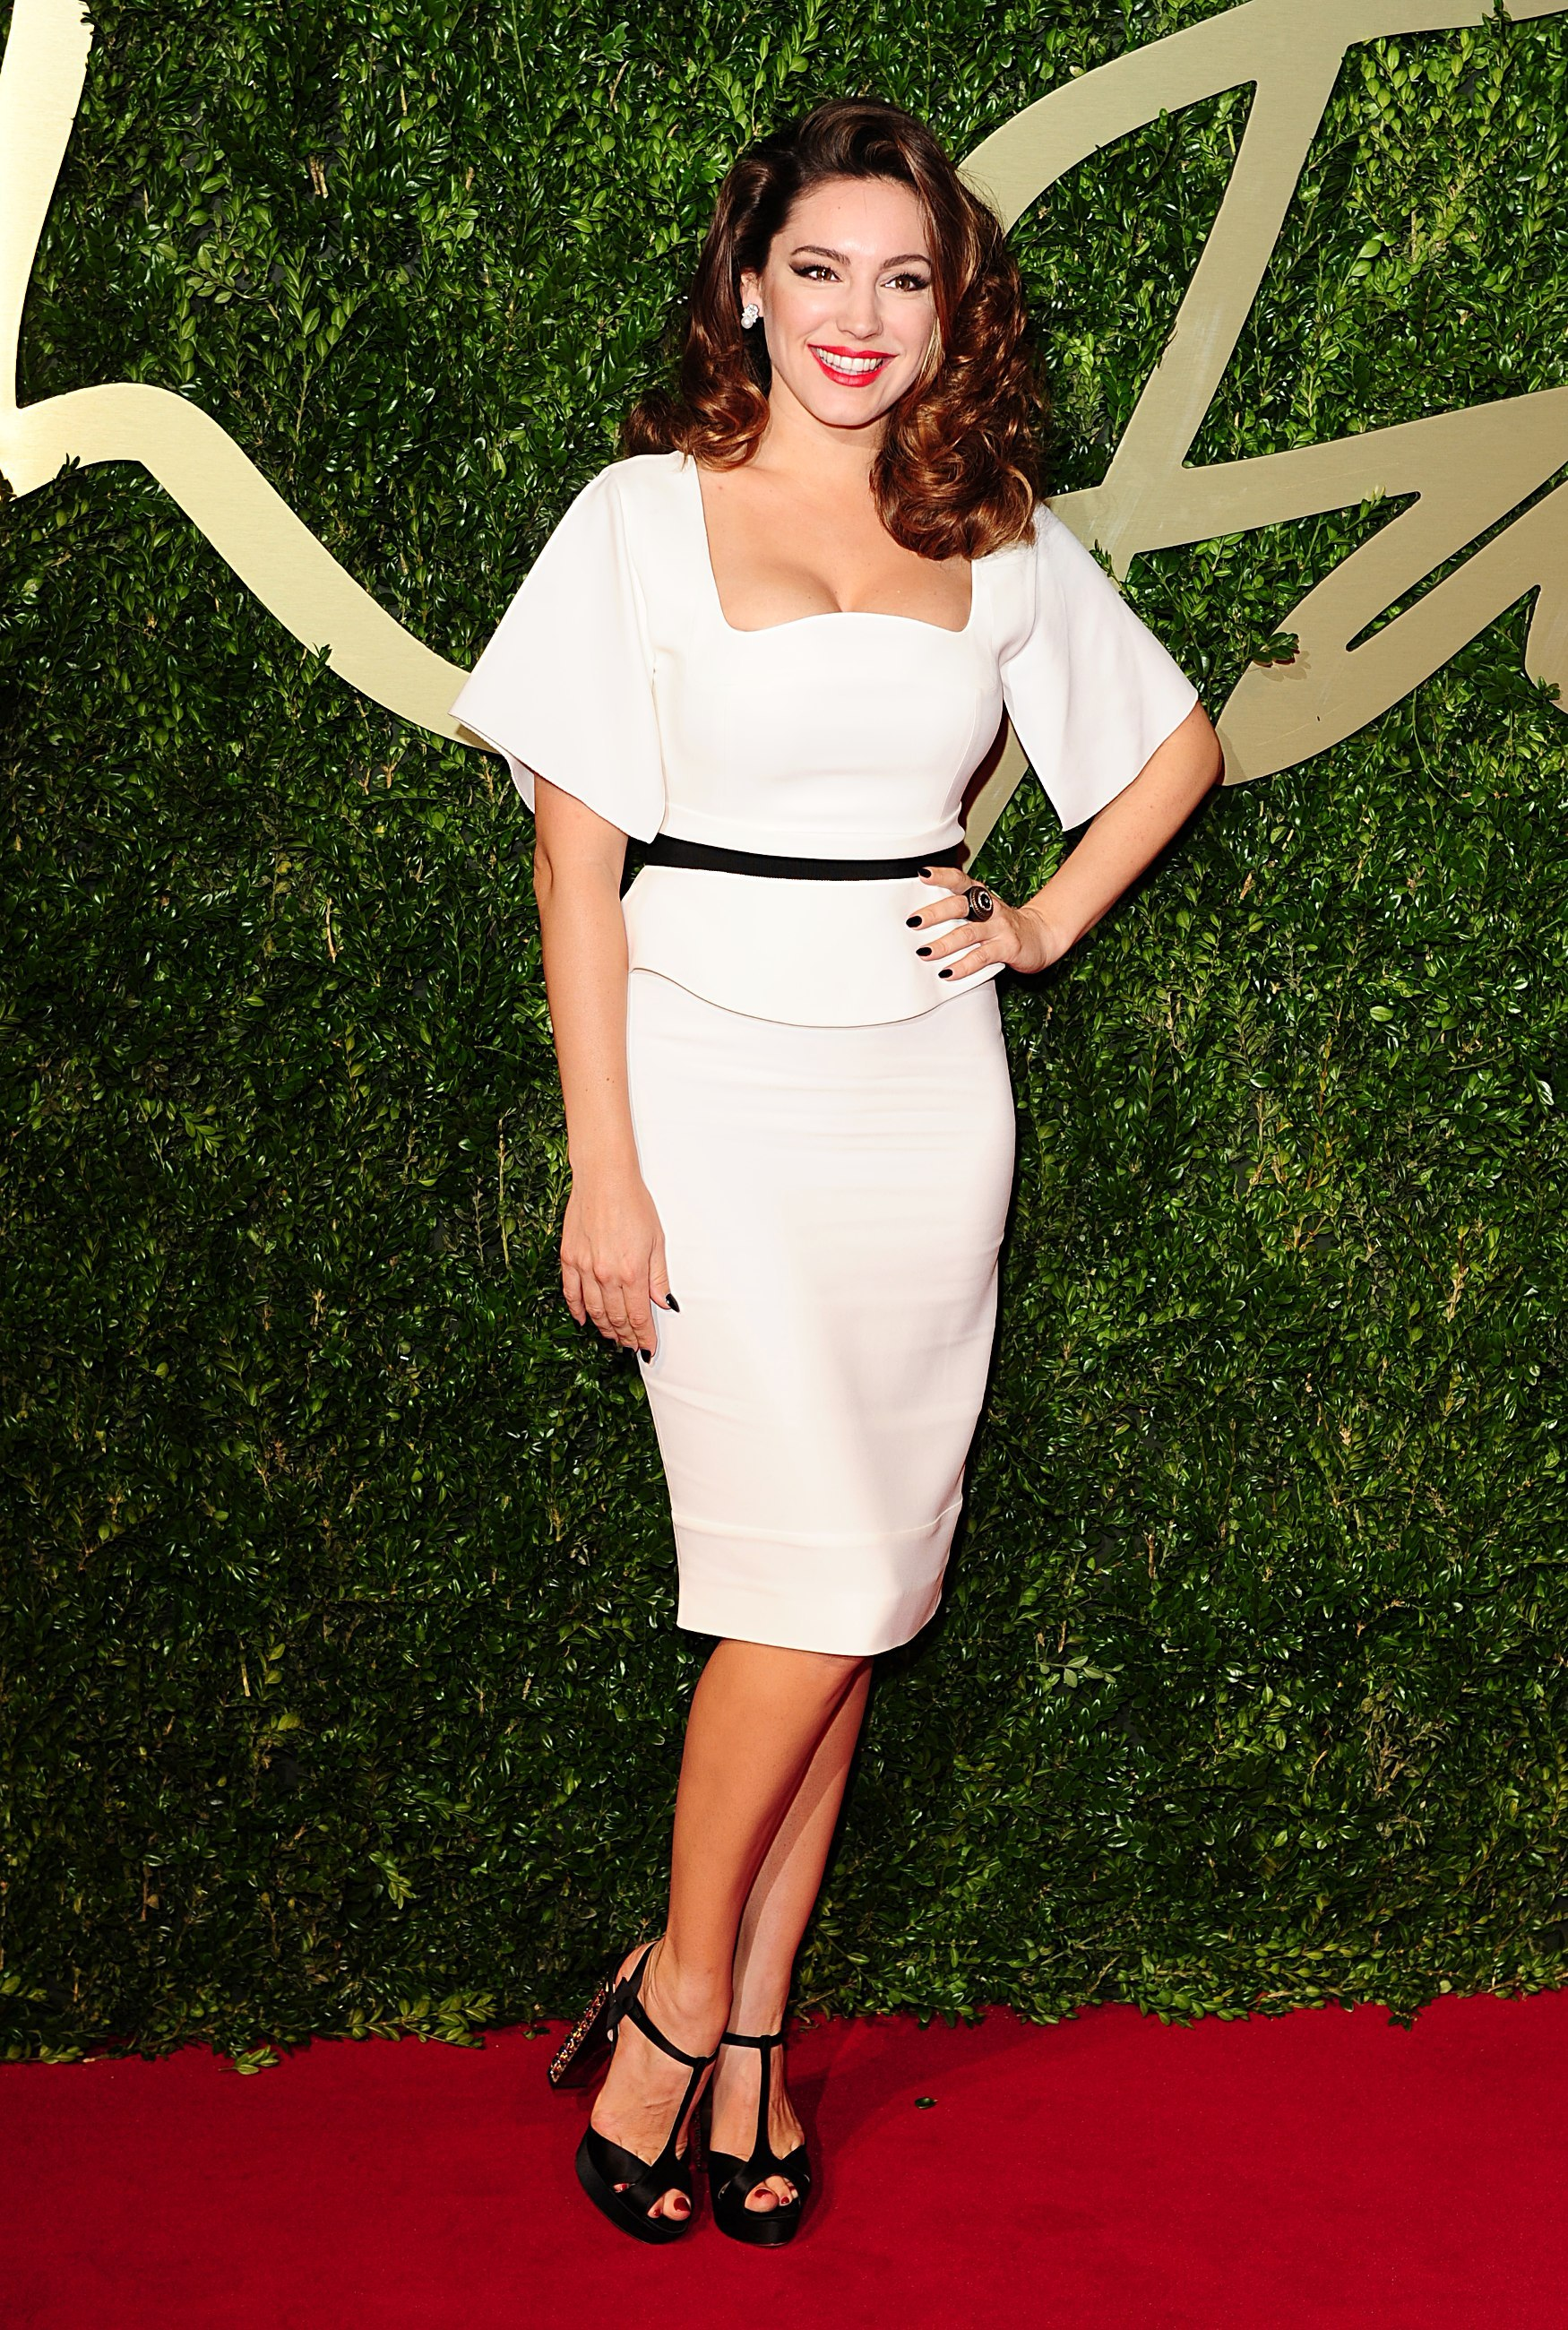 Kelly Brook set to sign whopping £1million autobiography deal to spill beans on tumultuous love life